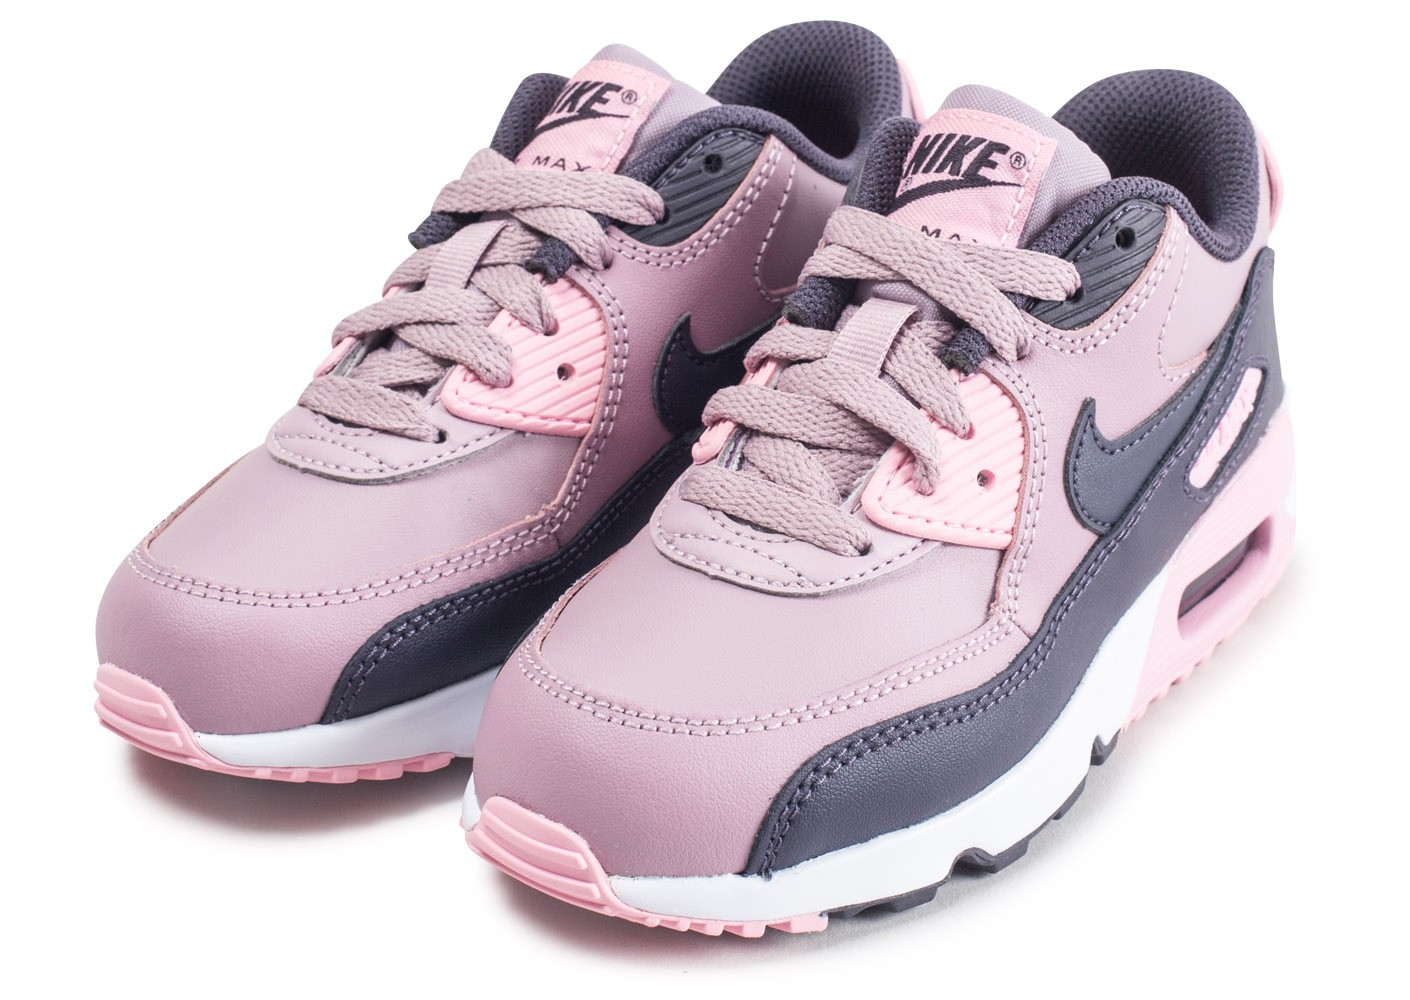 free shipping e848a f003a ... Chaussures Nike Air Max 90 Leather Pre-School rose enfant vue  intérieure ...